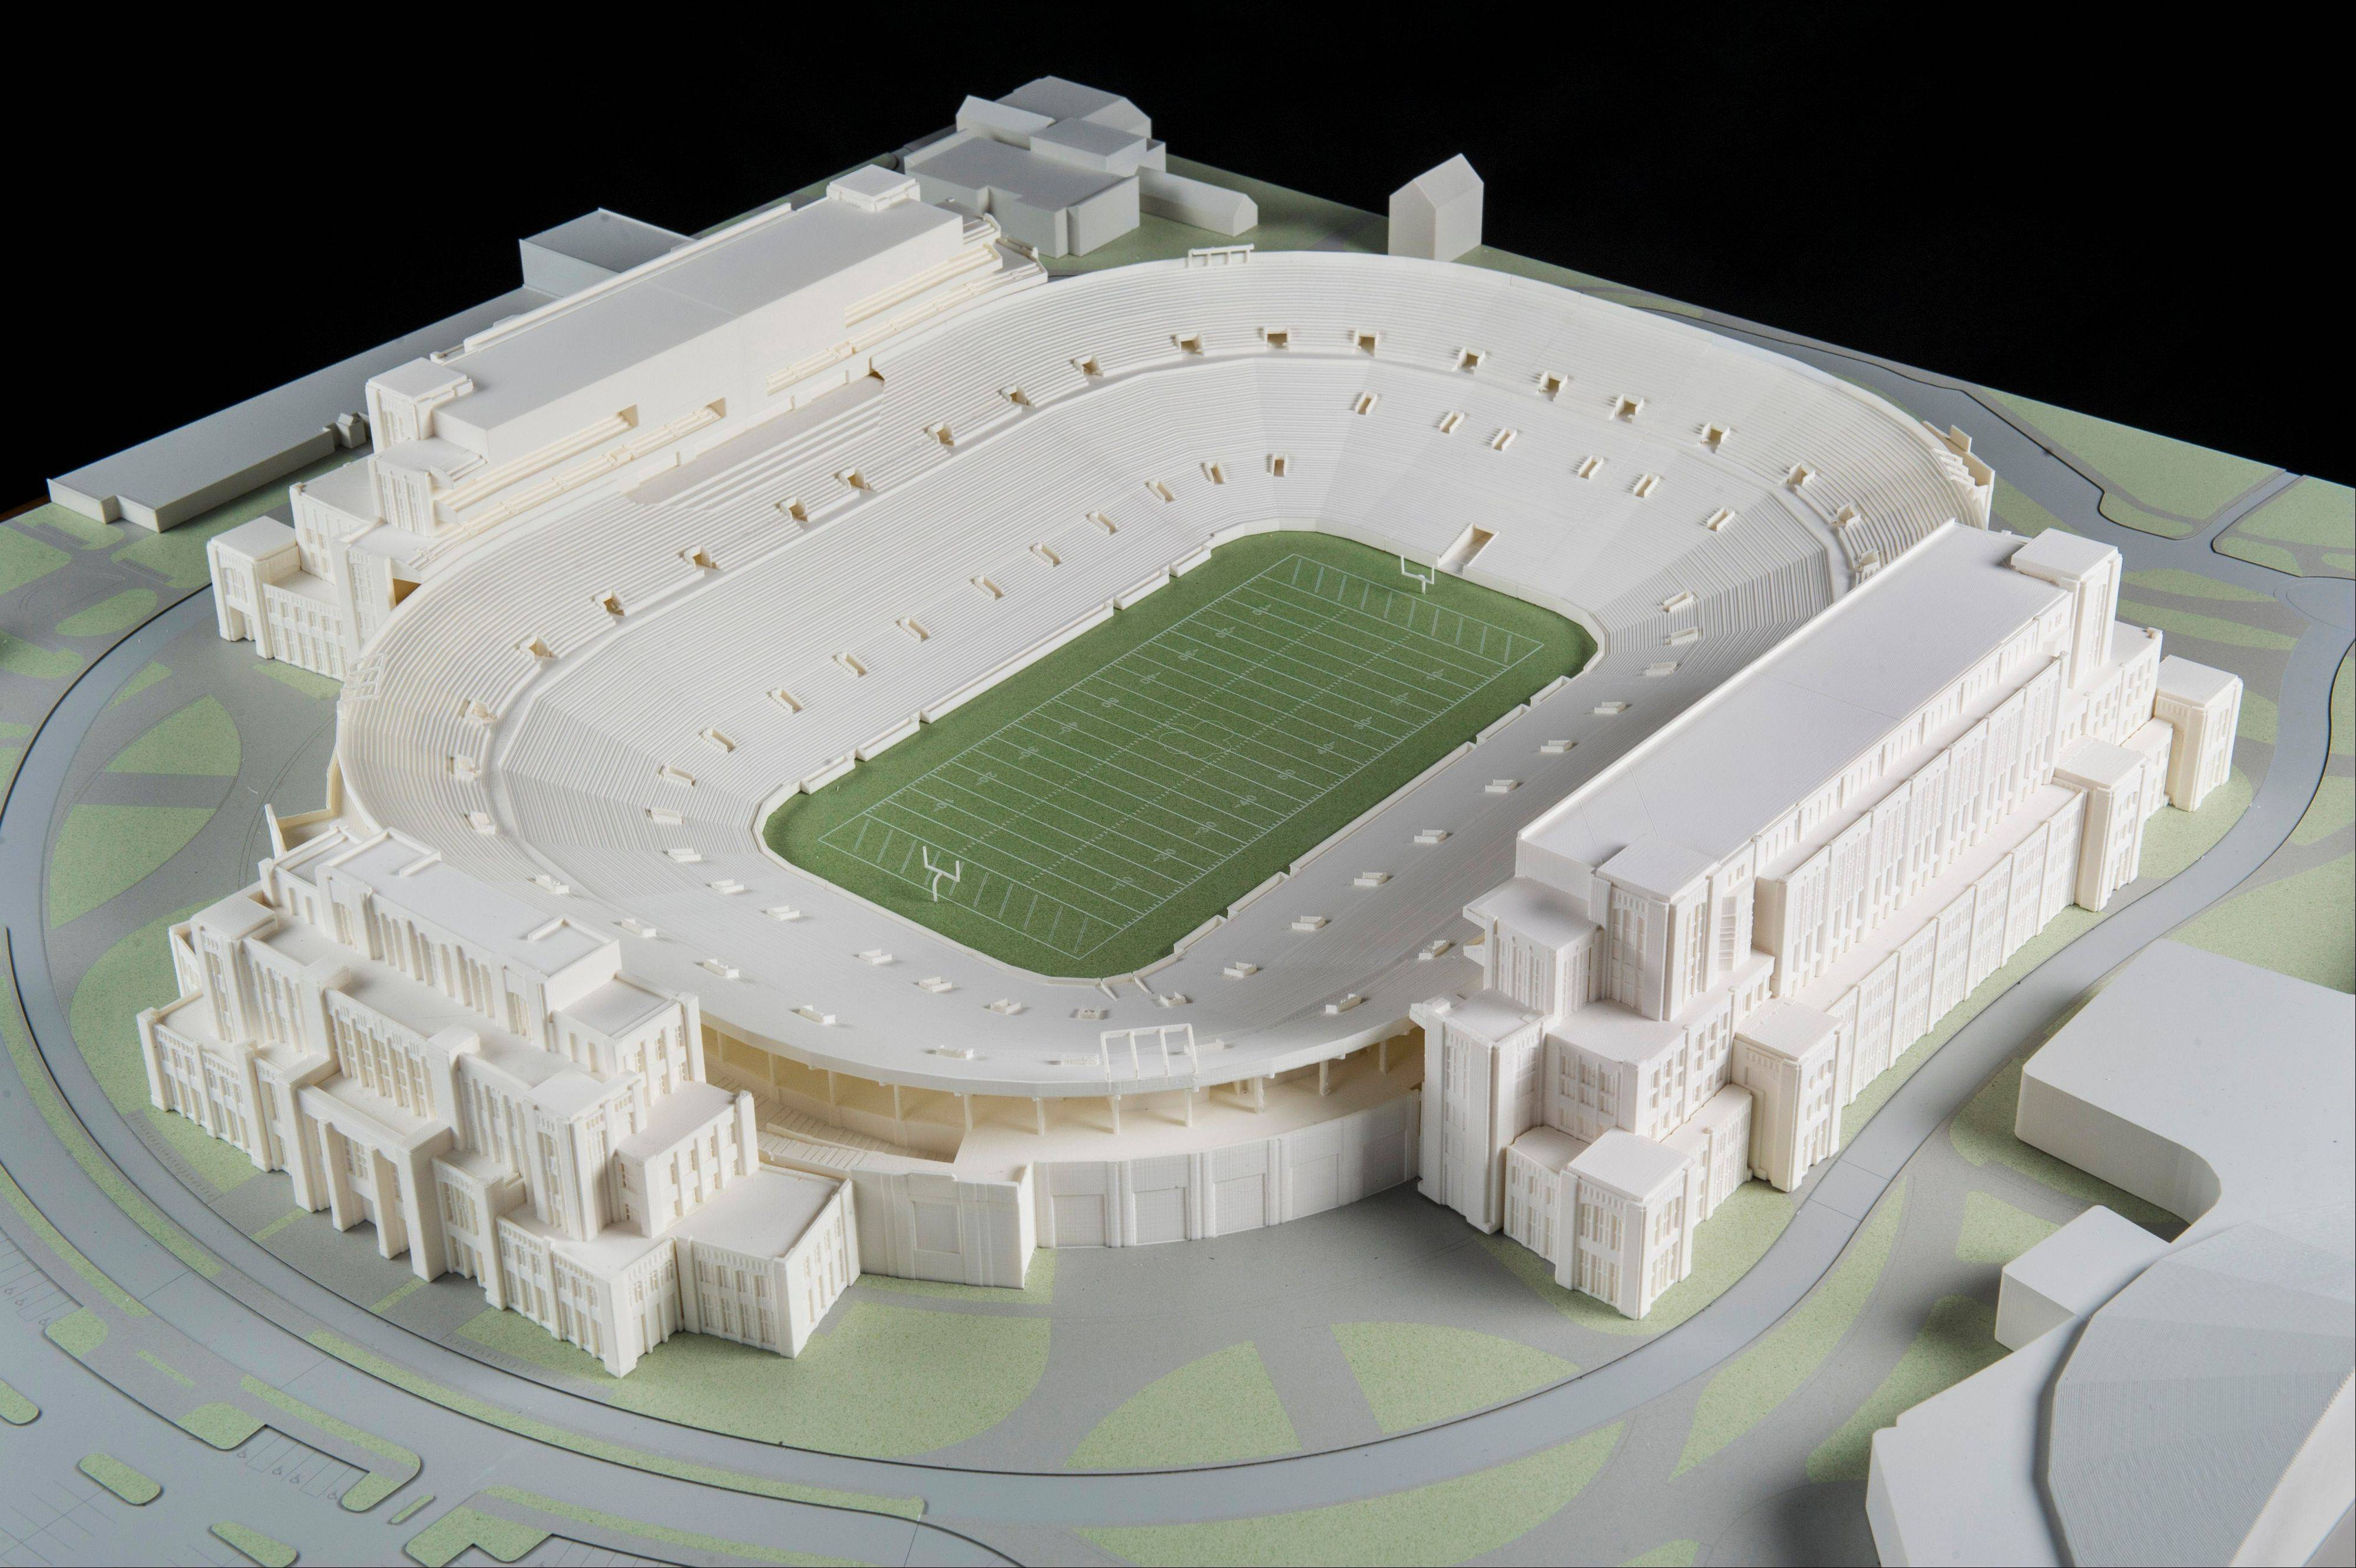 In this Jan. 17, 2014 photo is a model of The University of Notre Dame's new football stadium. Notre Dame announced plans Wednesday, Jan. 29, 2014 to expand the schoolís 84-year-old football stadium, adding up to 4,000 premium seats and spending about $400 million to add buildings on three sides of the ìHouse that Rockne Built.î